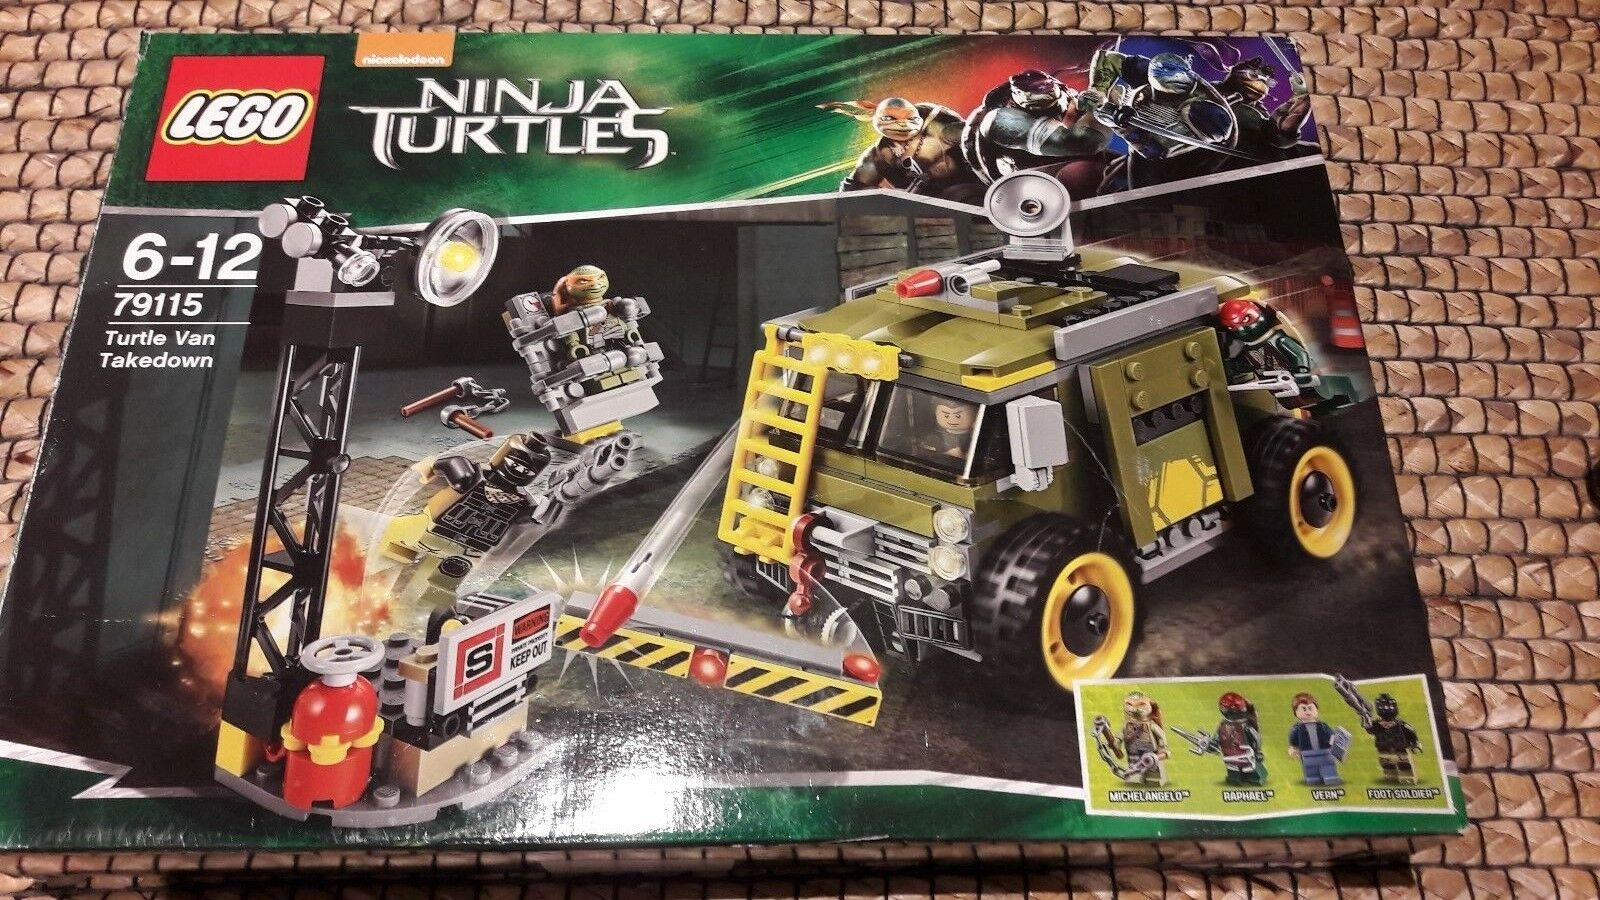 Collectors Item LEGO Ninja Turtles 79115 Turtle Van Takedown Building Set